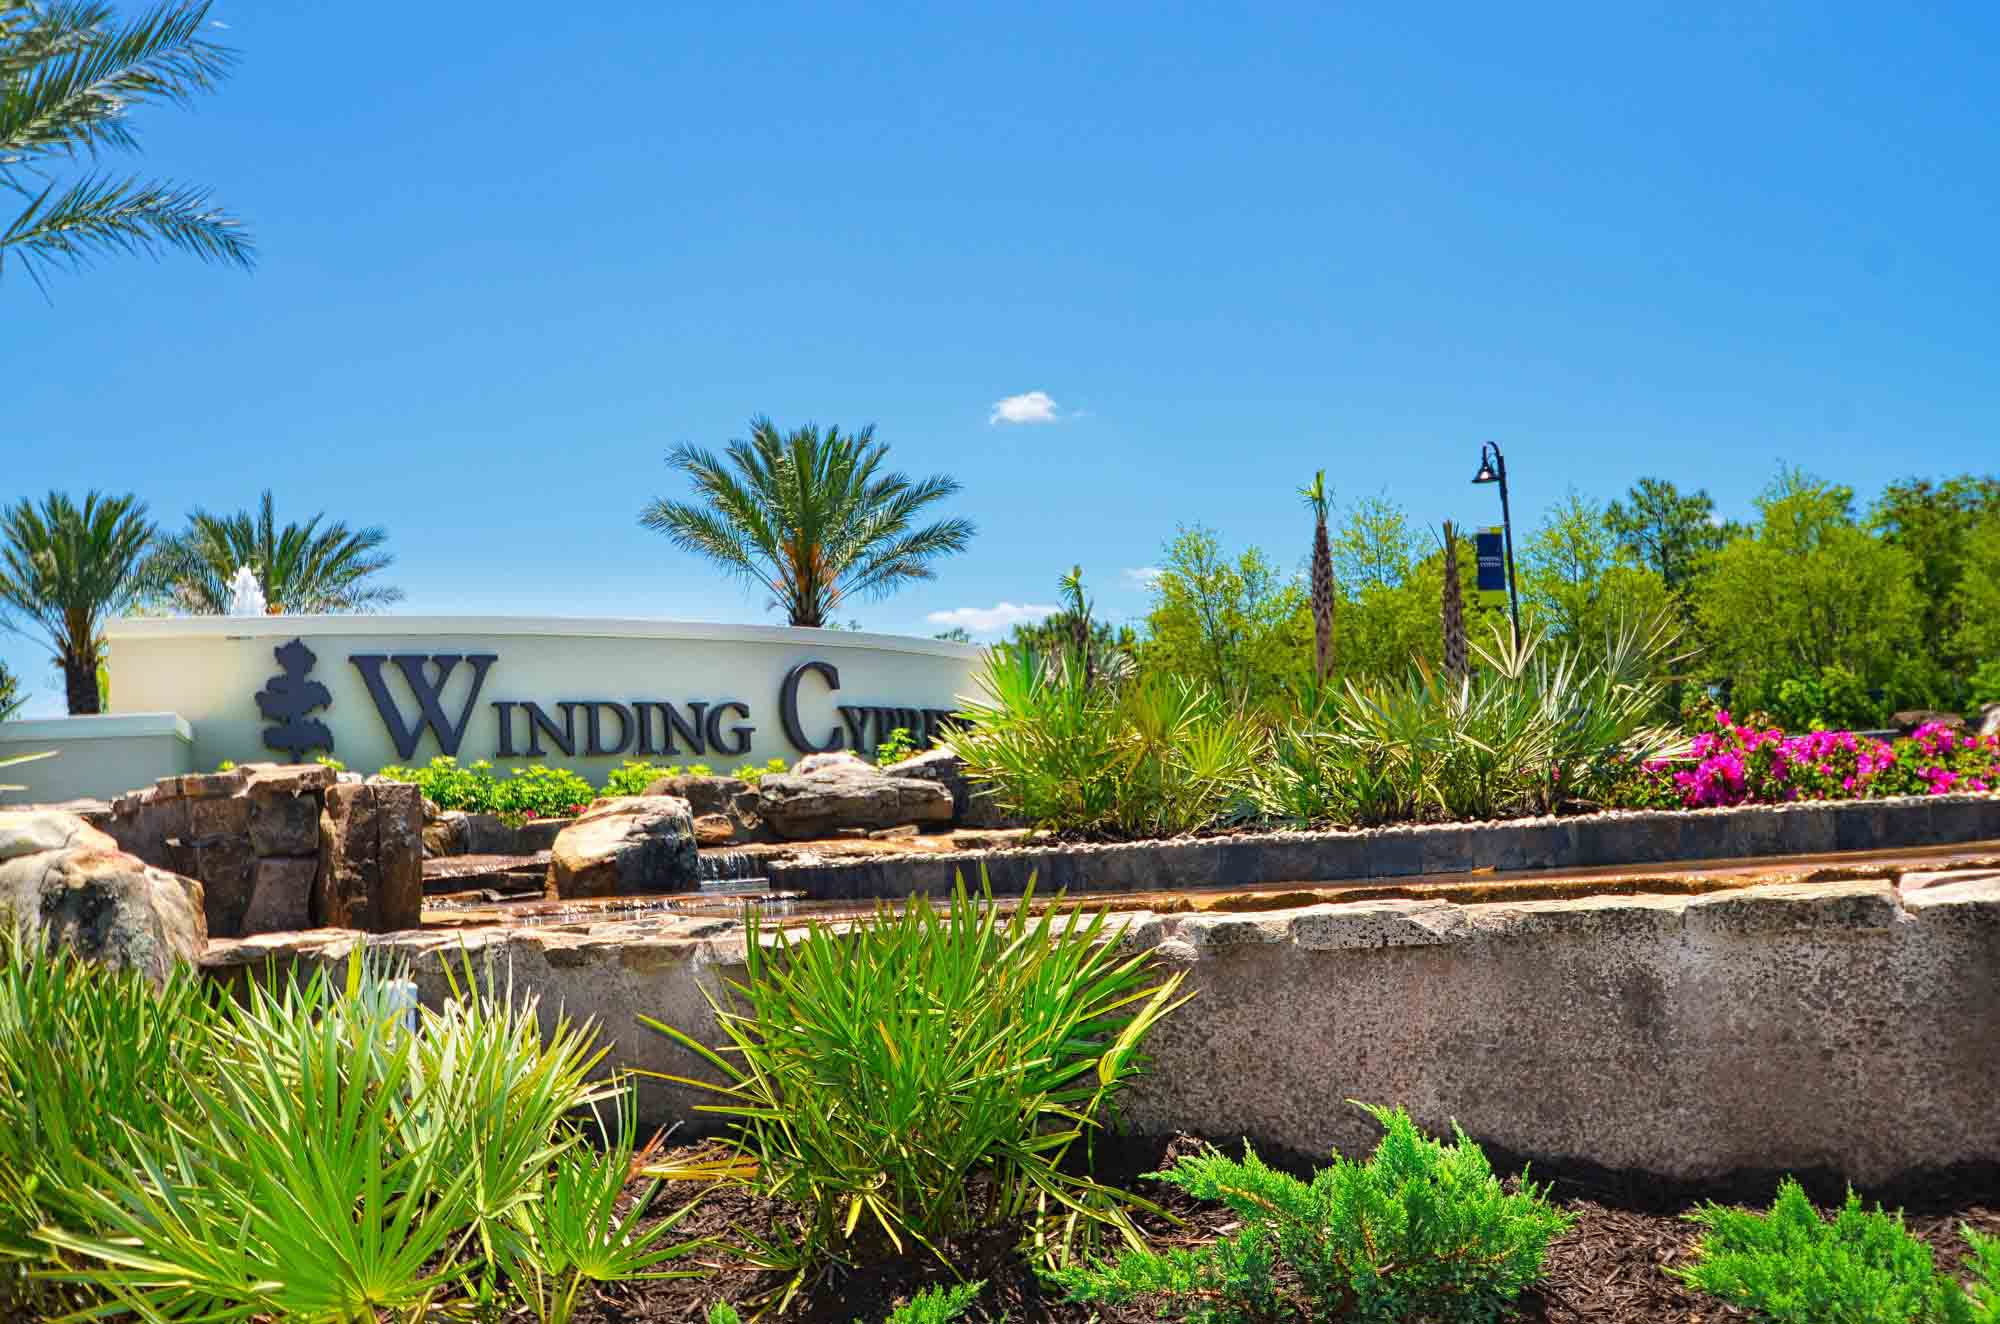 New Community of Winding Cypress